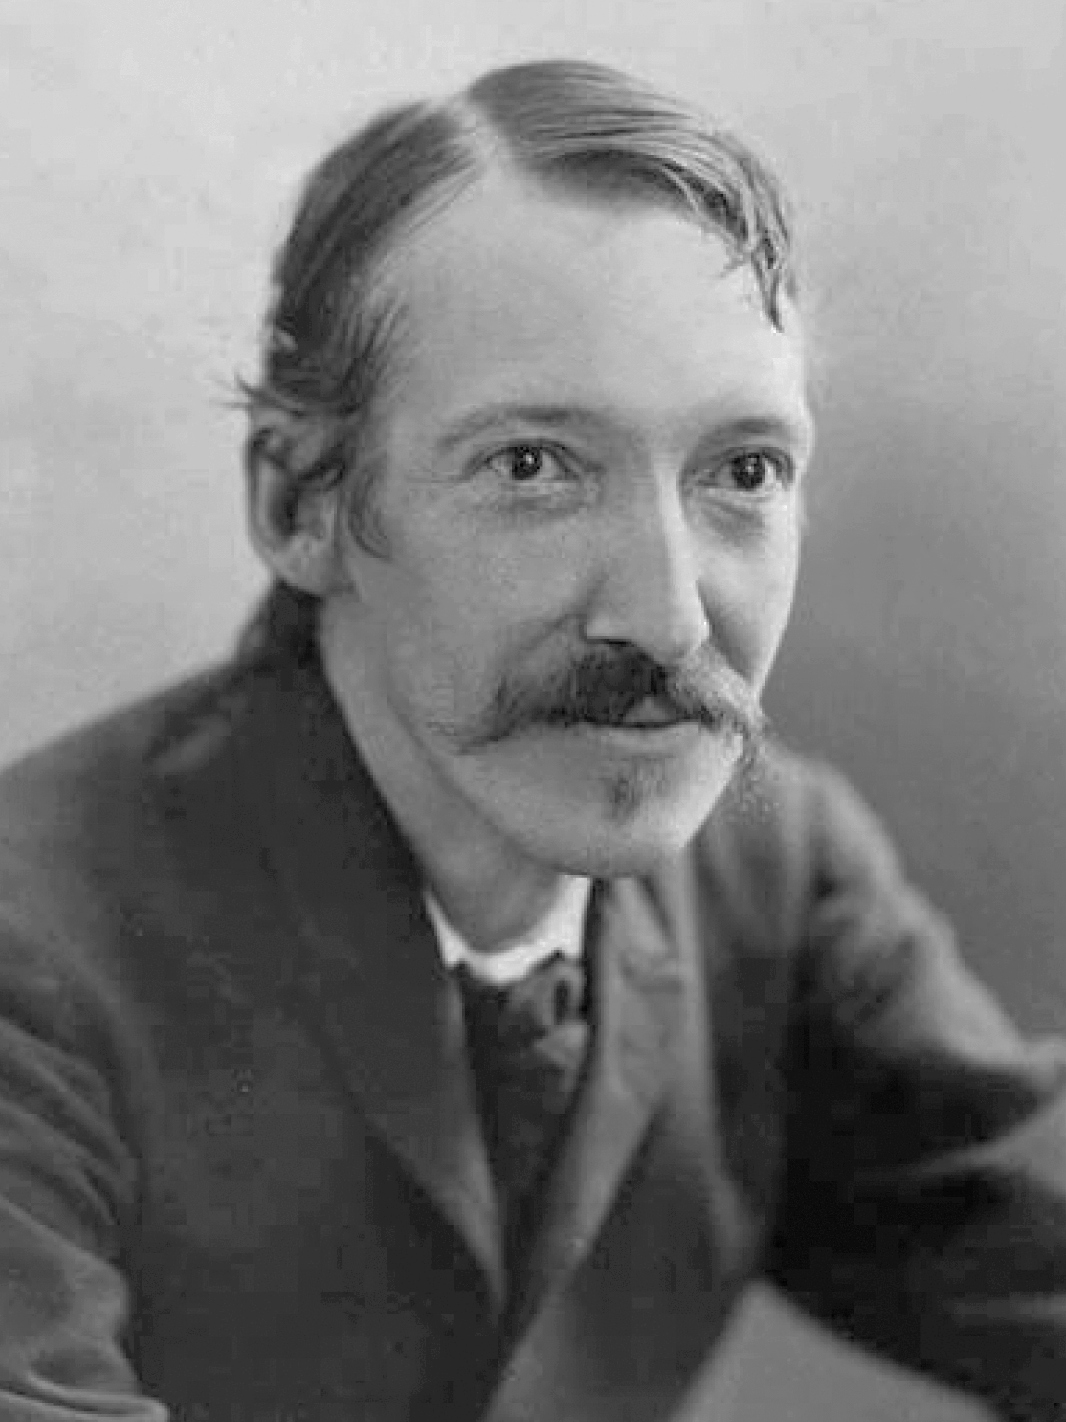 Photograph of Robert Louis Stevenson by Henry Walter Barnett , 1893. From the State Library of New South Wales.